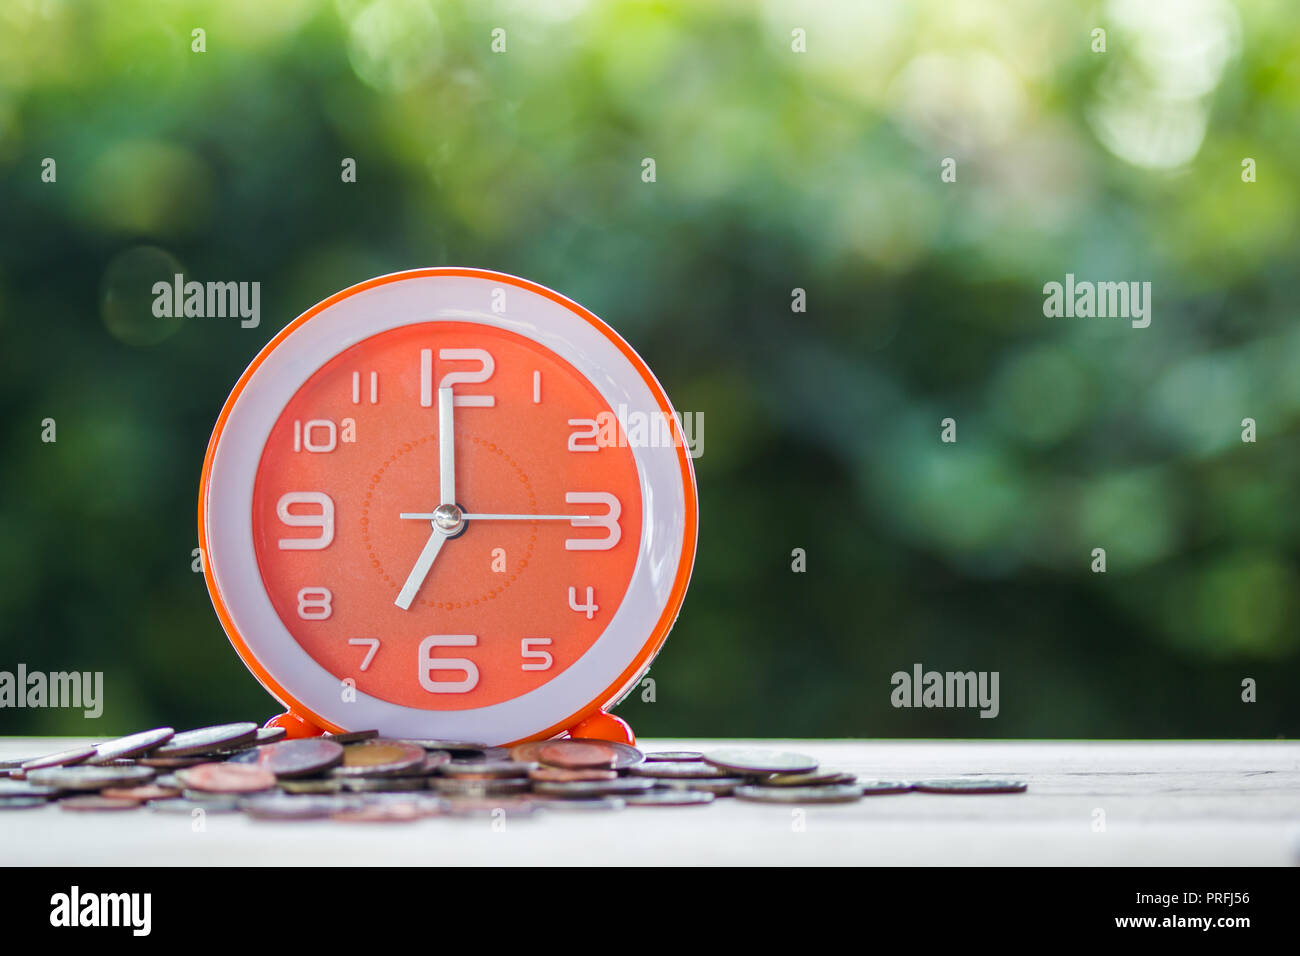 Time and money investment, Deadline loan money concept : Time on coins on table with green bokeh as background. Business finance with time and investm - Stock Image